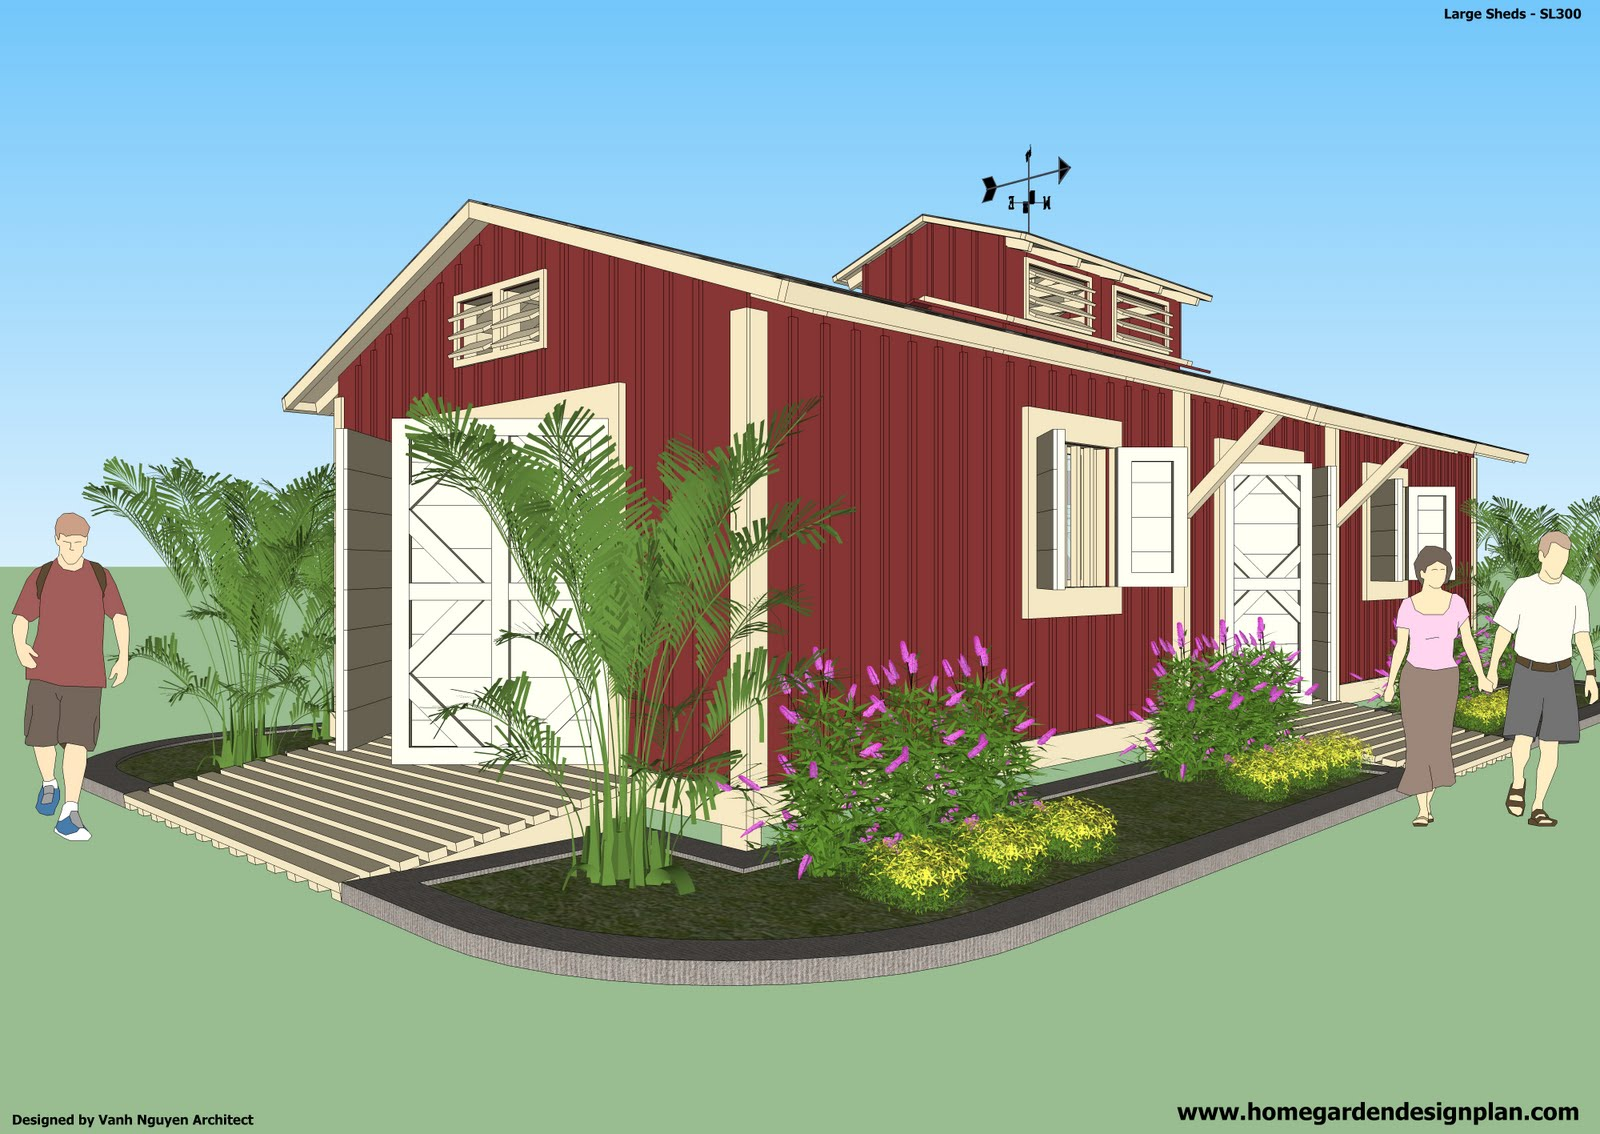 Tae gogog detail 20 x 25 shed plans for Garden shed designs free